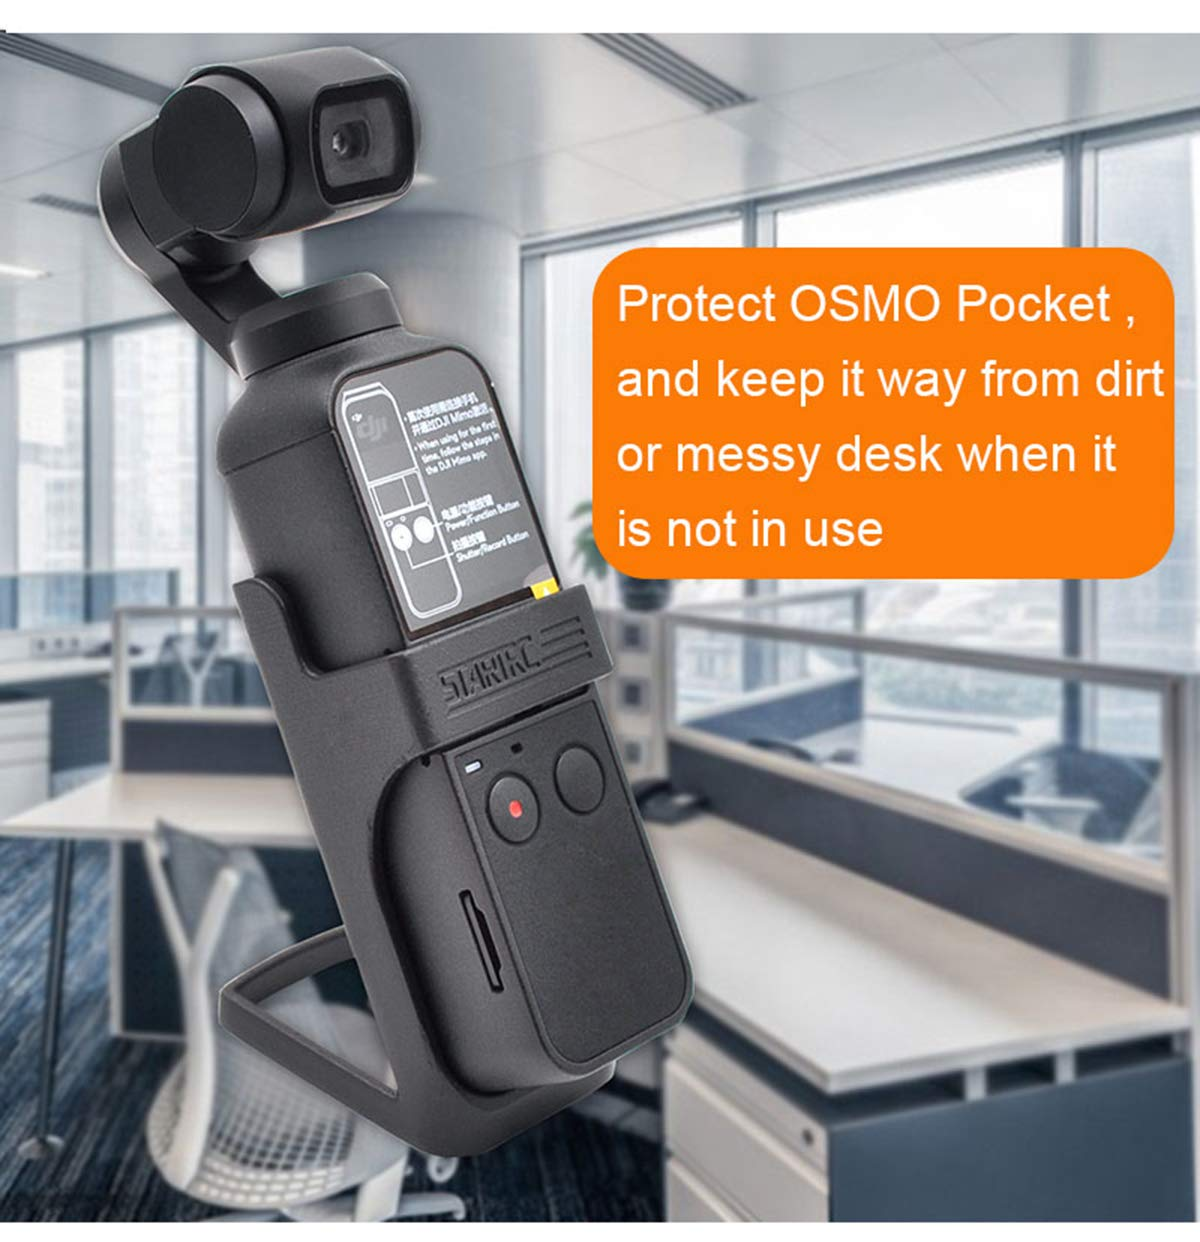 Ailsan for DJI OSMO Pocket Accessories Desk Dock Lightweight Table Support Stand Holder Base Gimbal Camera Fixed Bracket